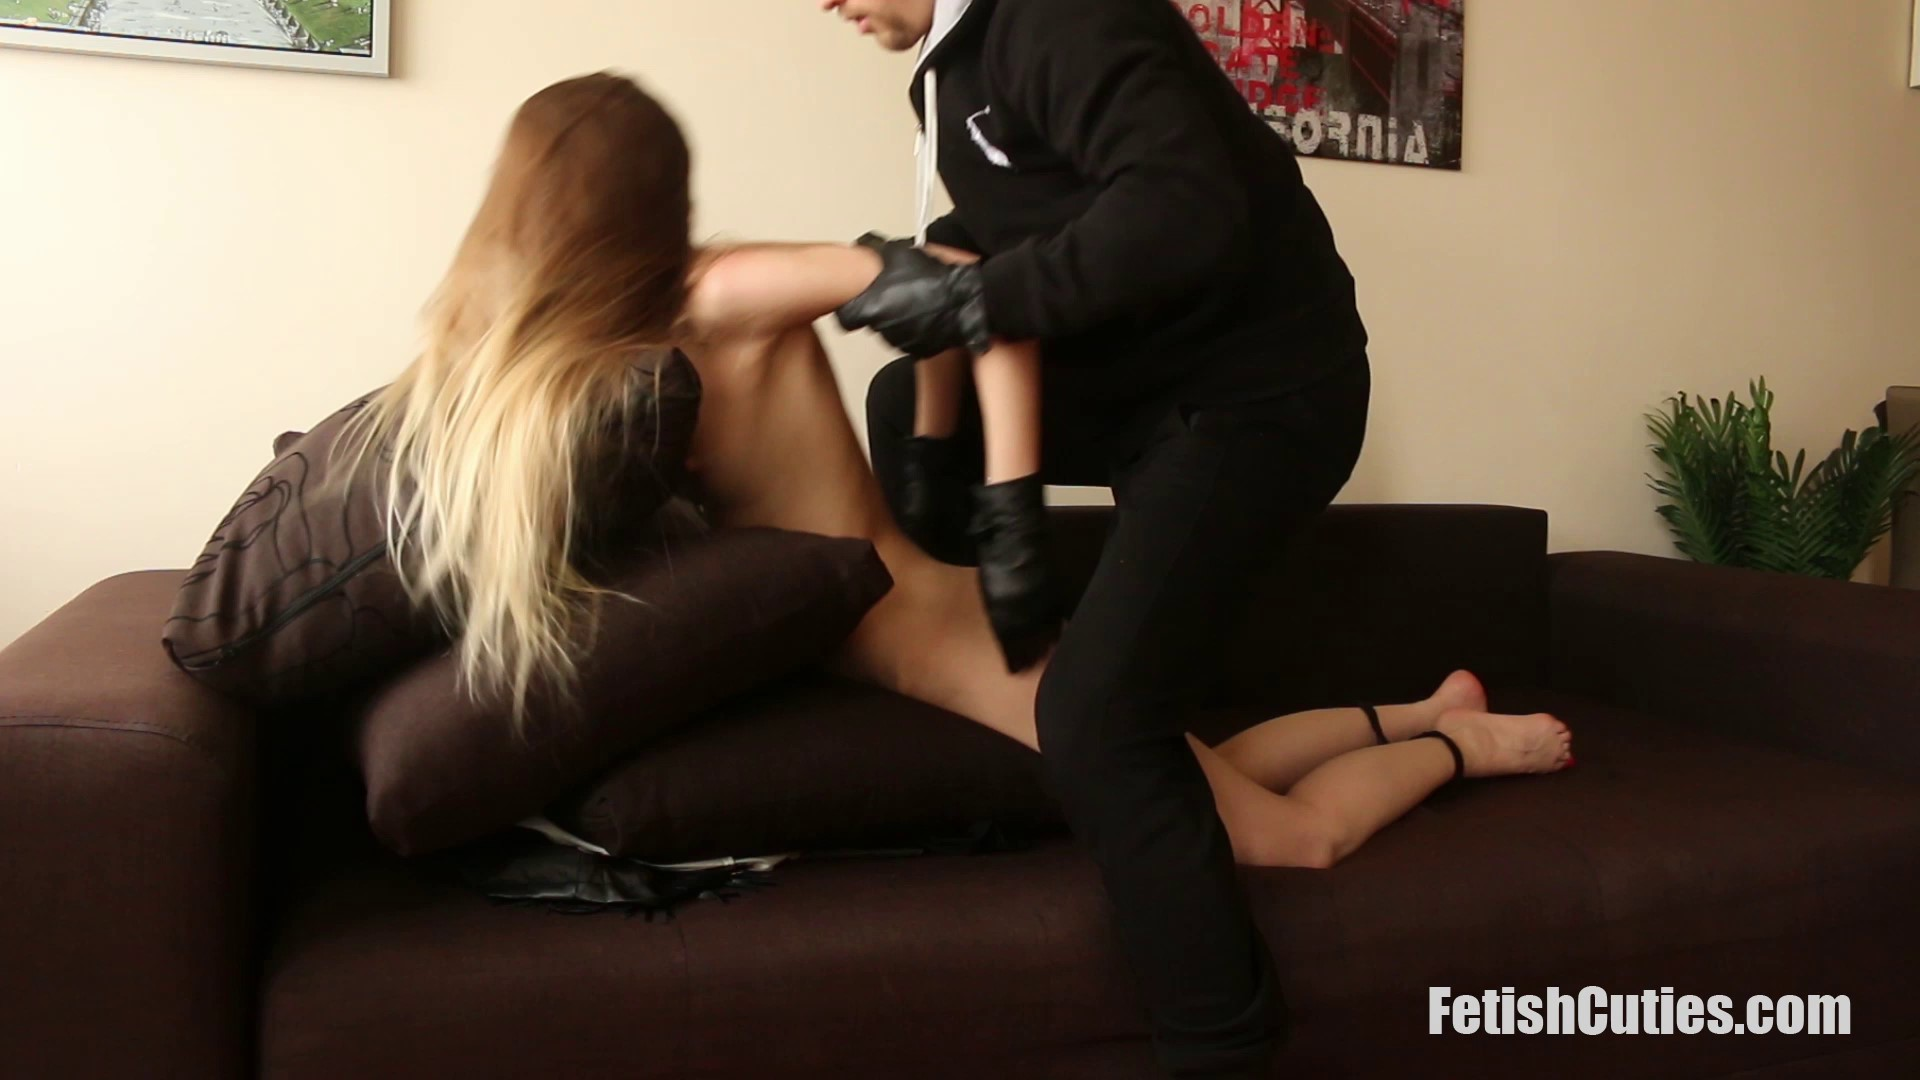 FETISH CUTIES Unsuspectedly Caught, Neck Chopped And Used For Pleasure (84)